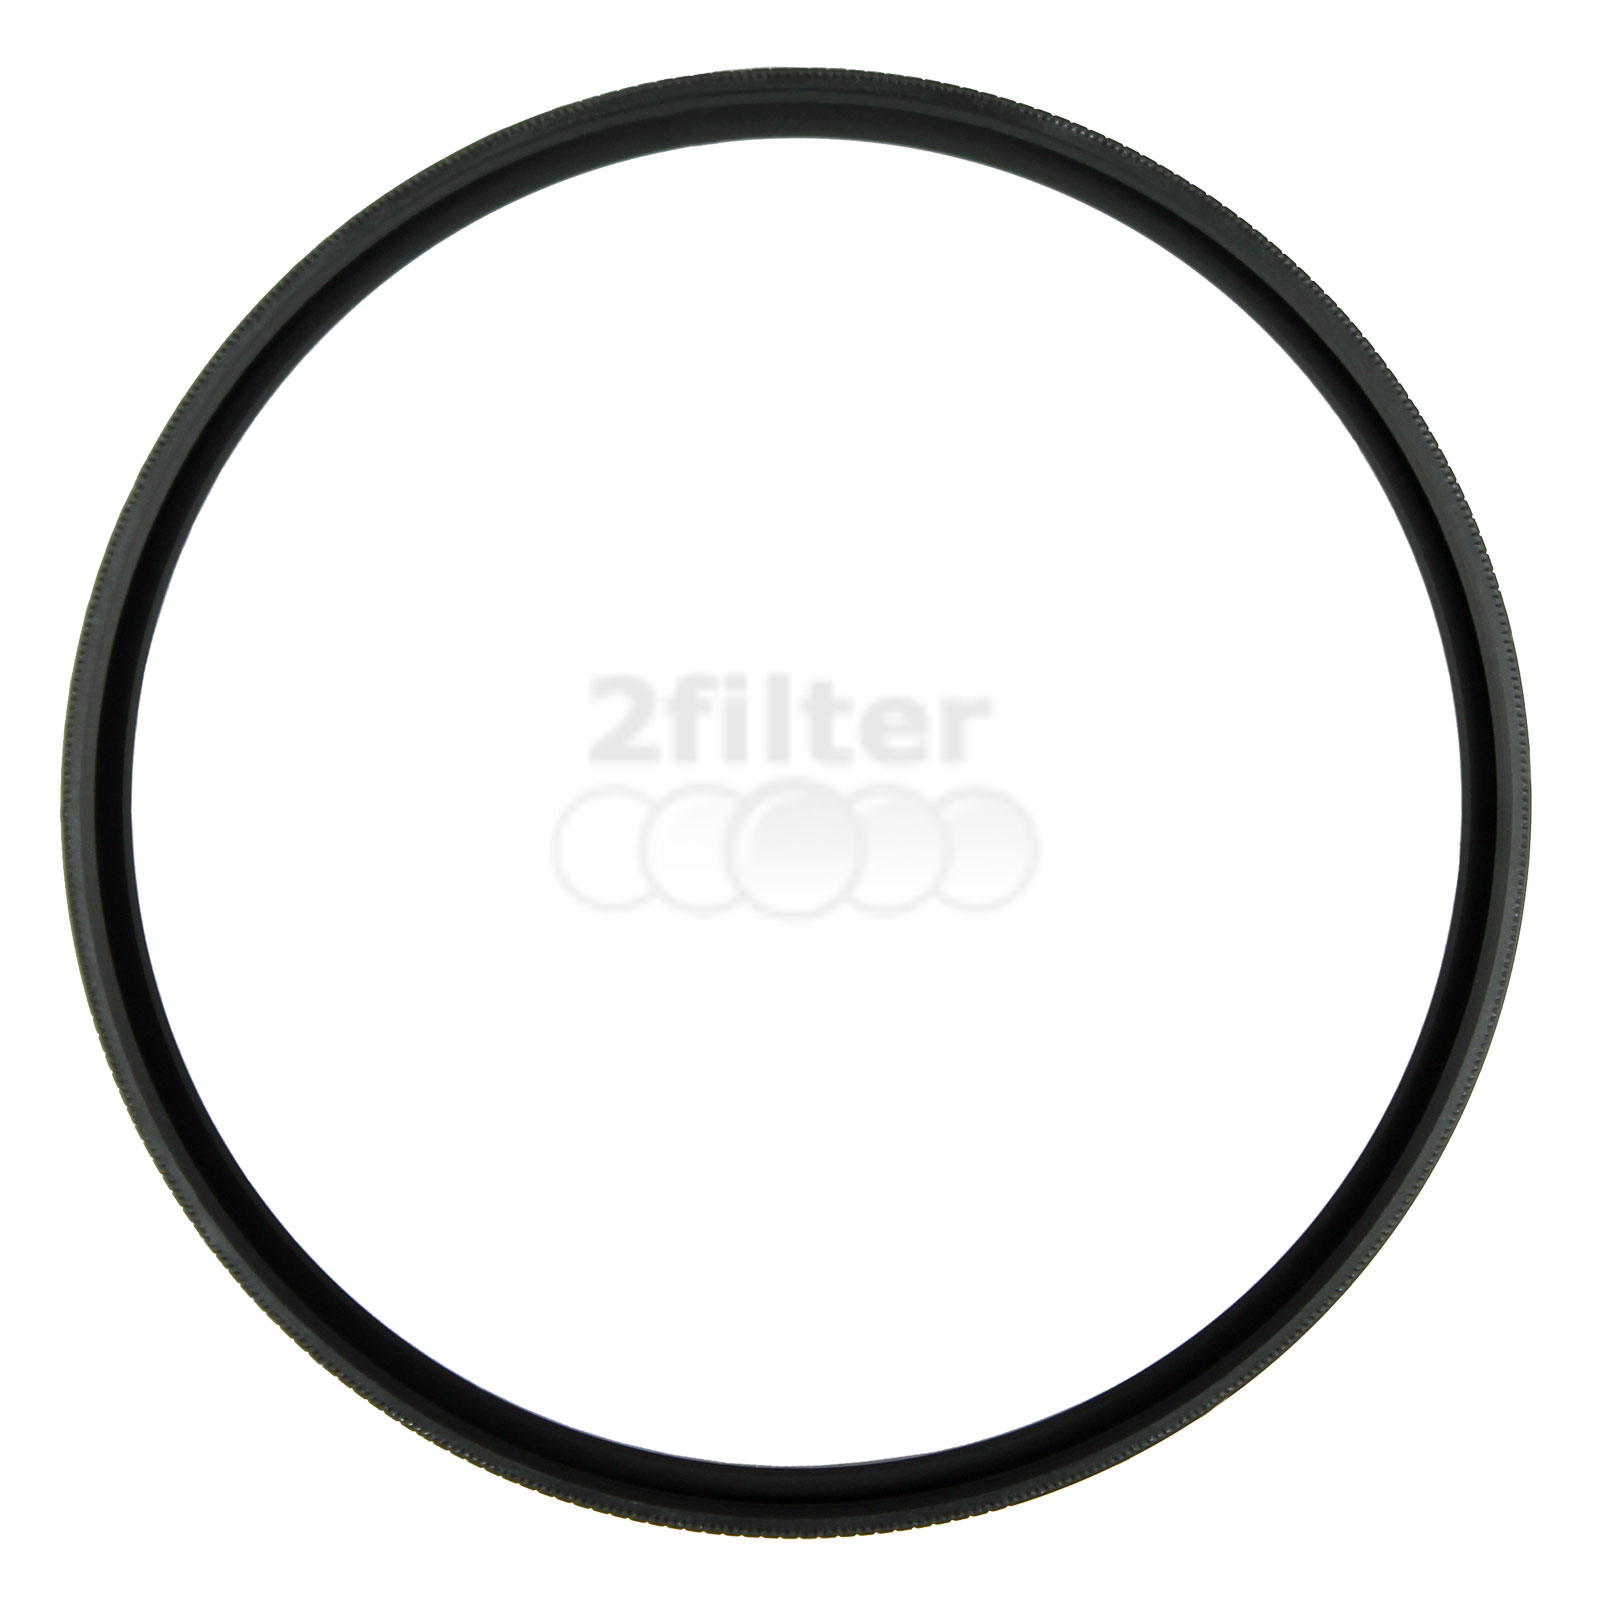 DHG-Lens-Protect-Filter-Top-Down-View